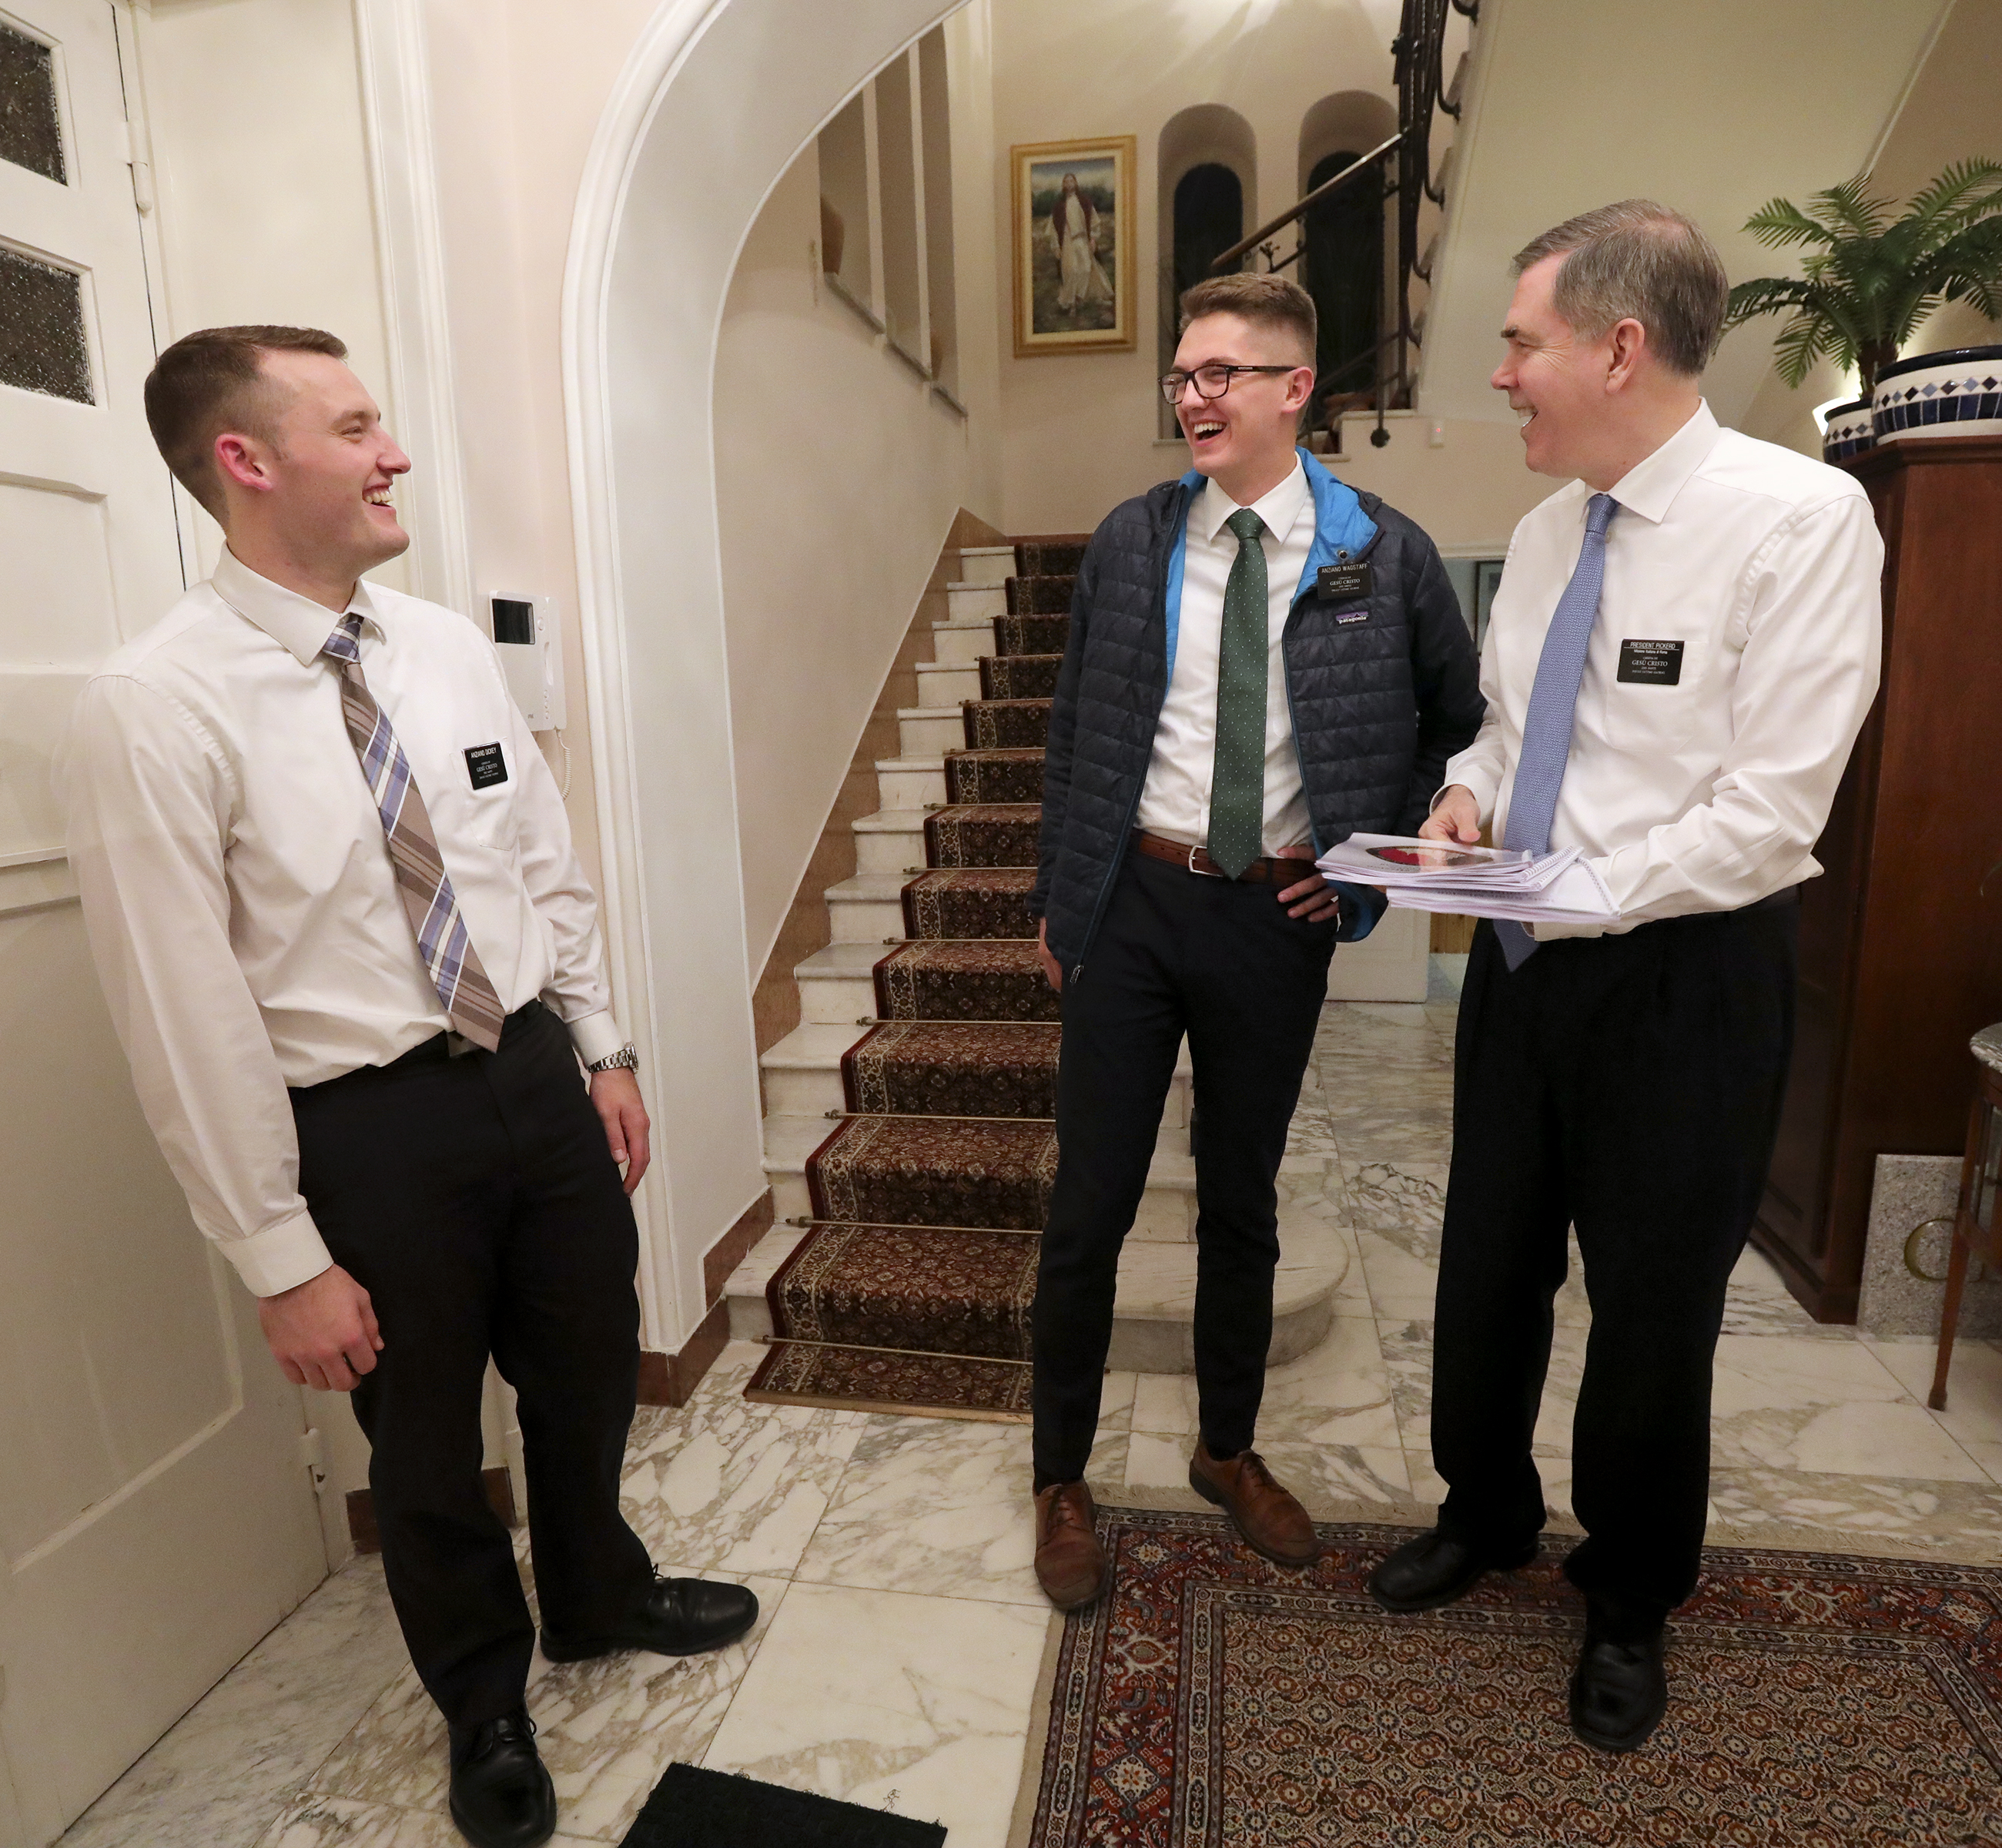 Elder Bryce Dickey and Elder Travis Wagstaff drop off a final copy of the Rome mission conference itinerary and roster of missionaries to President Michael D. Pickerd, of the Italy Rome Mission, at the mission home in Rome, Italy, on Friday, Nov. 16, 2018. The Church of Jesus Christ of Latter-day Saints has announced the creation of four new missions and the dissolving 12 existing missions. With these changes, announced on Jan. 2 and beginning July 1, there will be 399 missions worldwide.